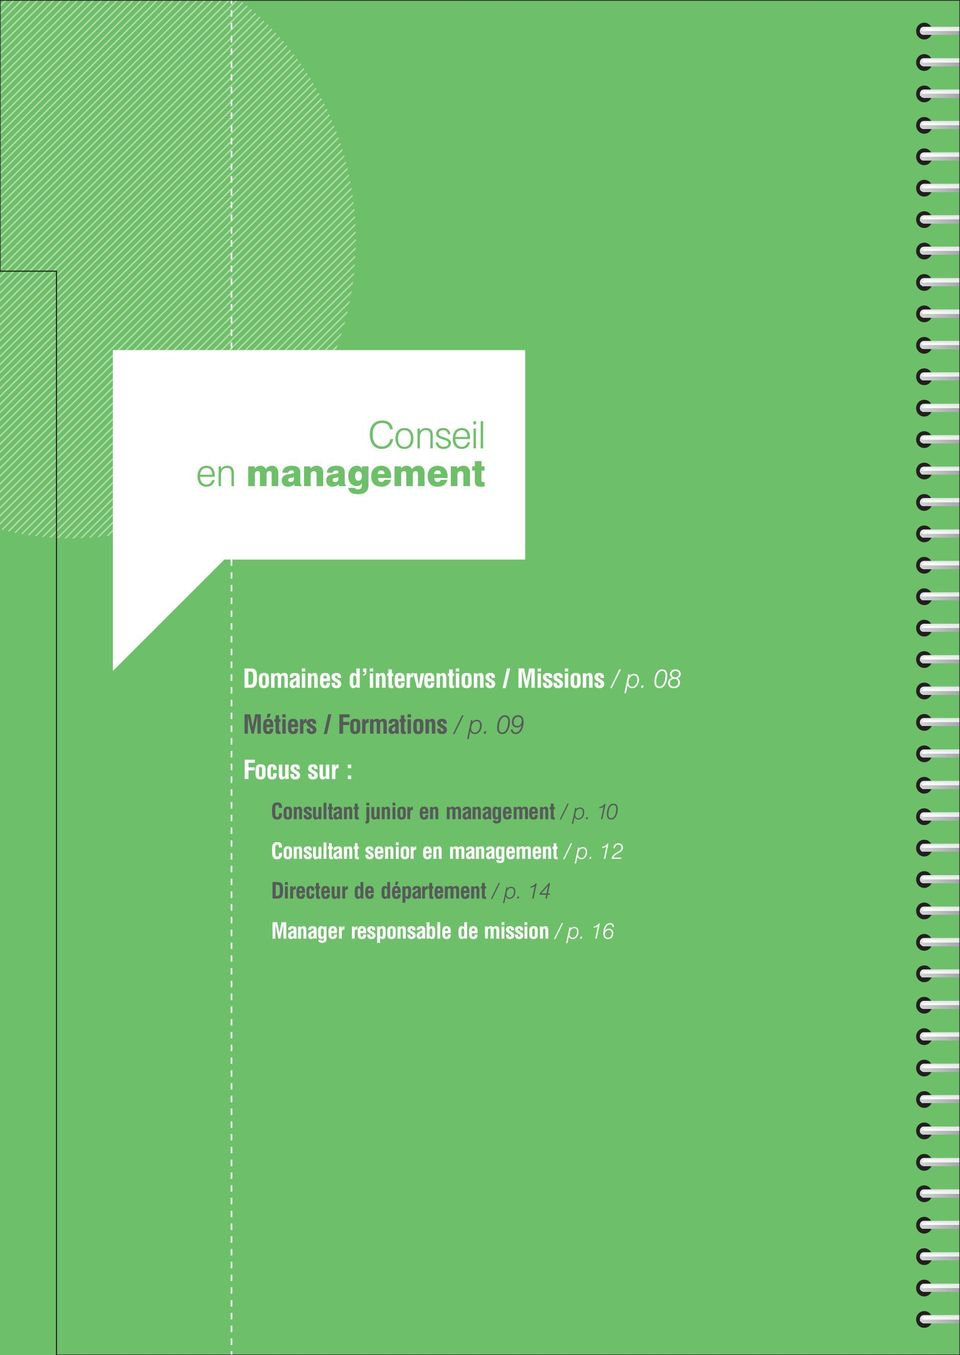 09 Focus sur : Consultant junior en management / p.